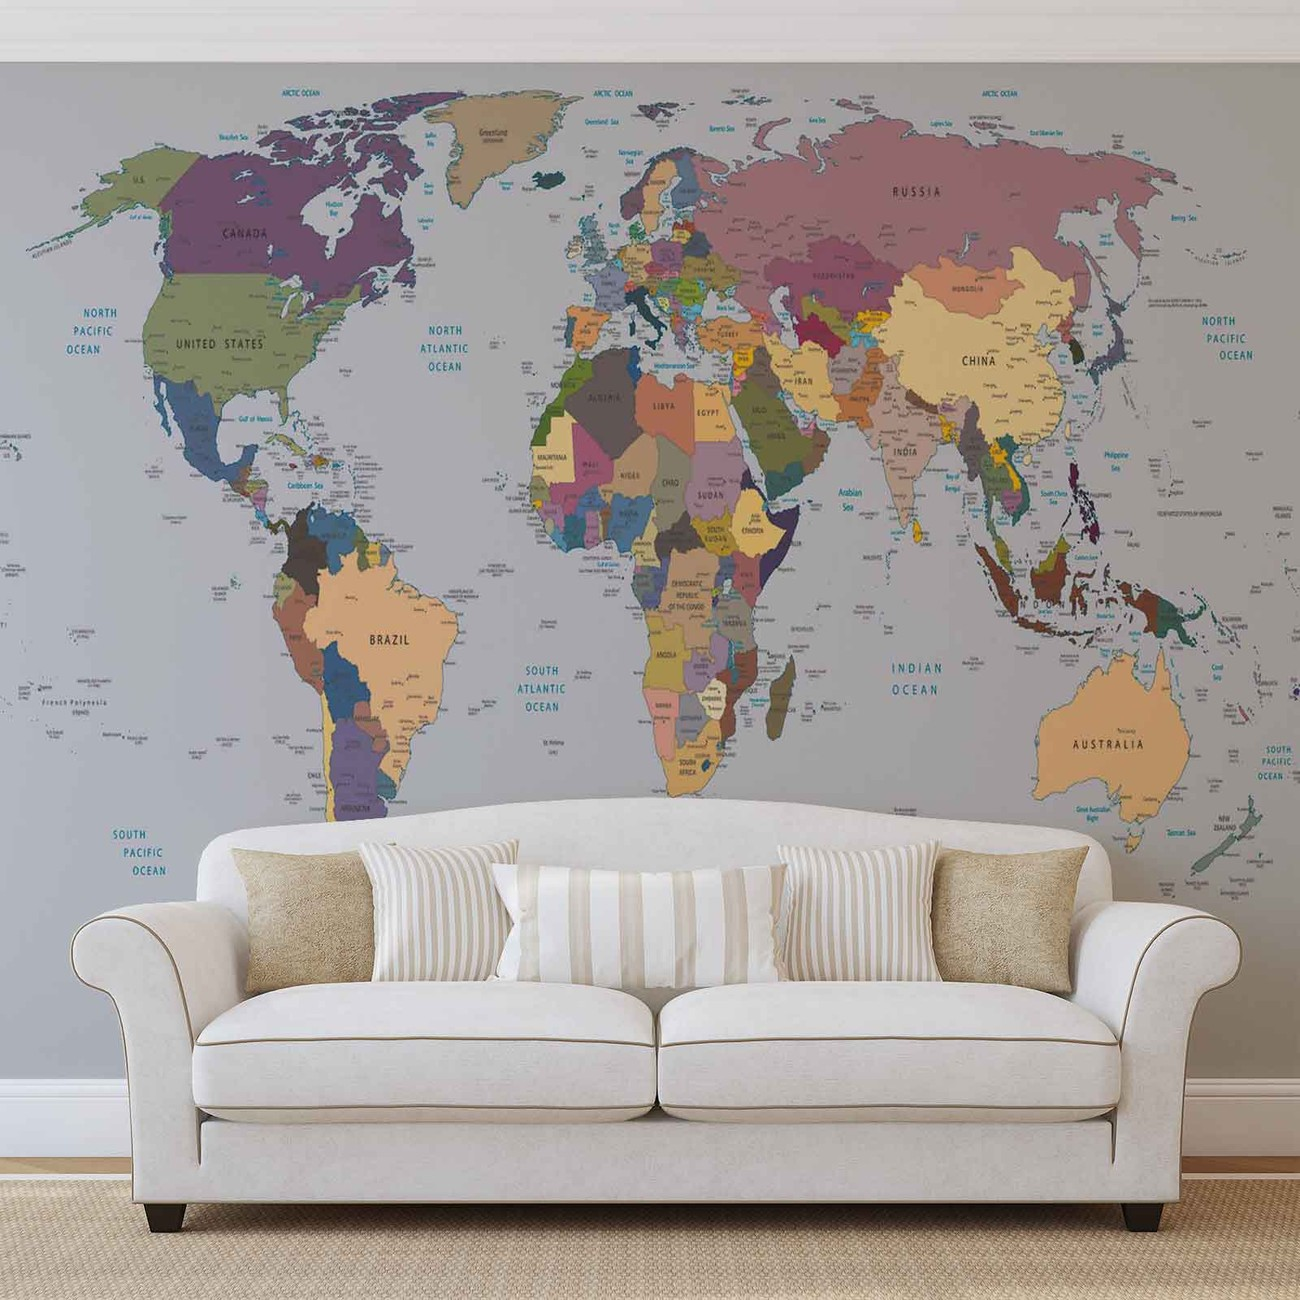 World map wall paper mural buy at europosters 5 gumiabroncs Choice Image